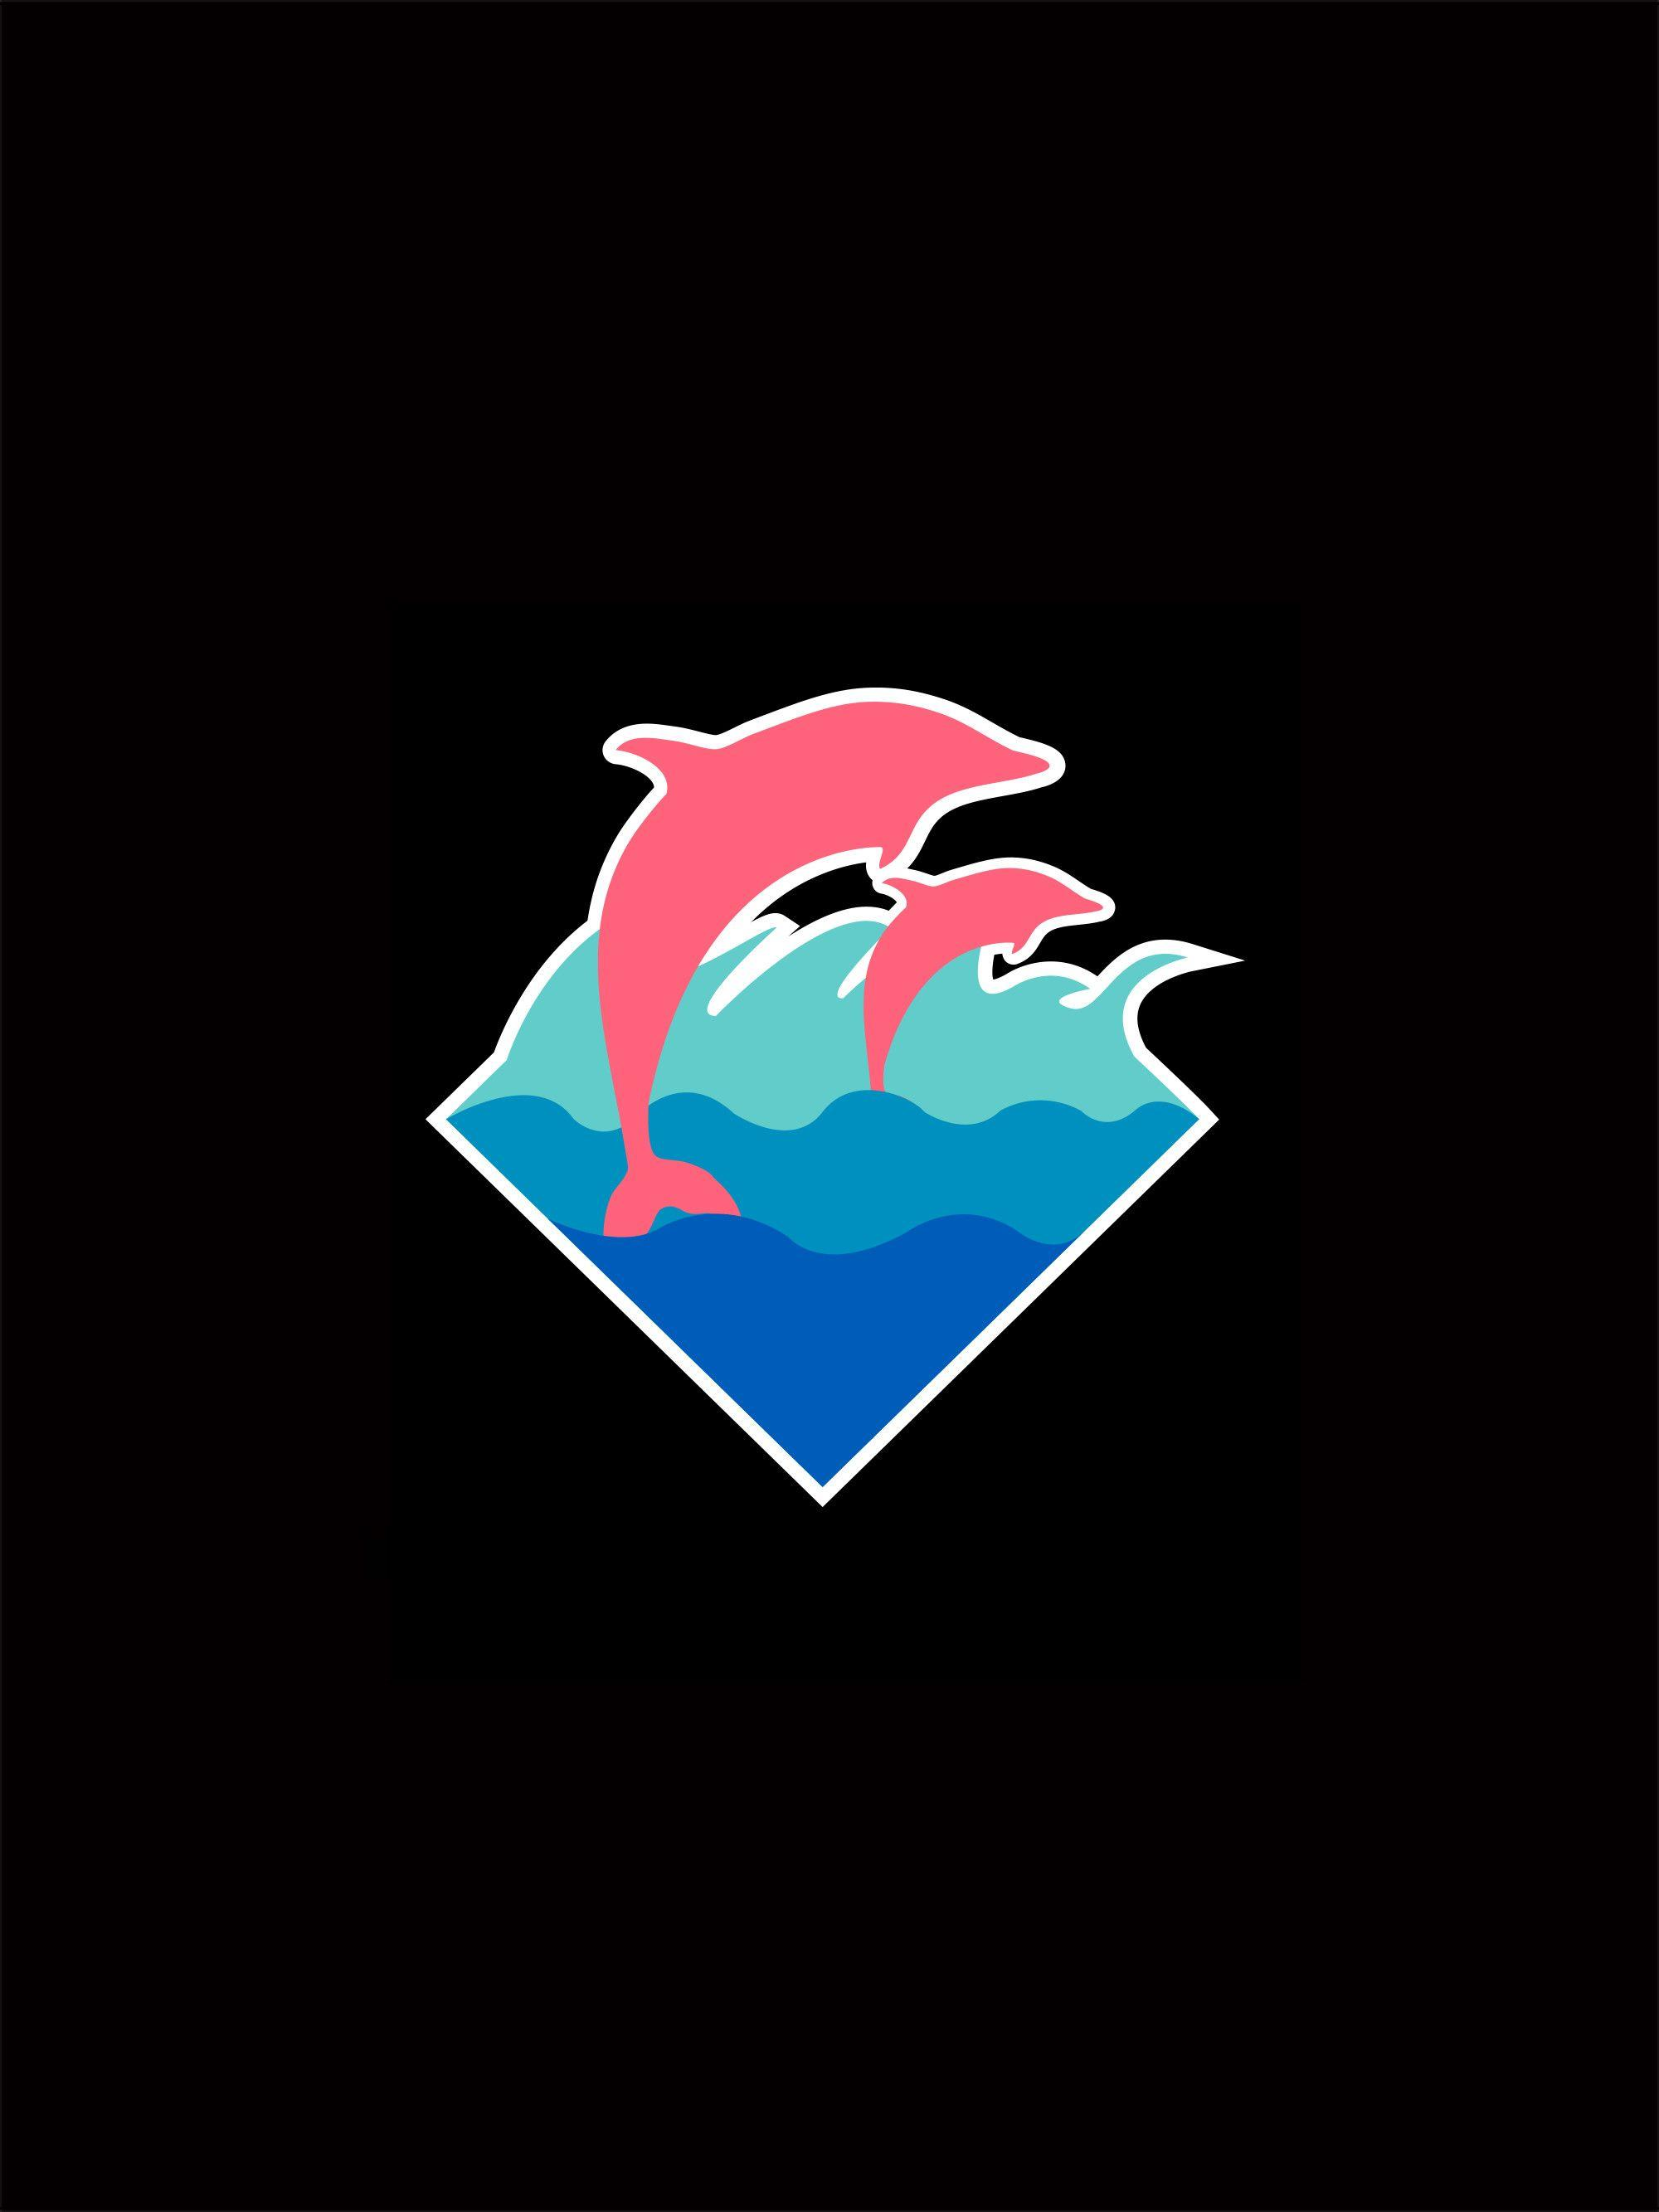 Pink Dolphins Wallpapers - Wallpaper CavePink Dolphin Wallpaper